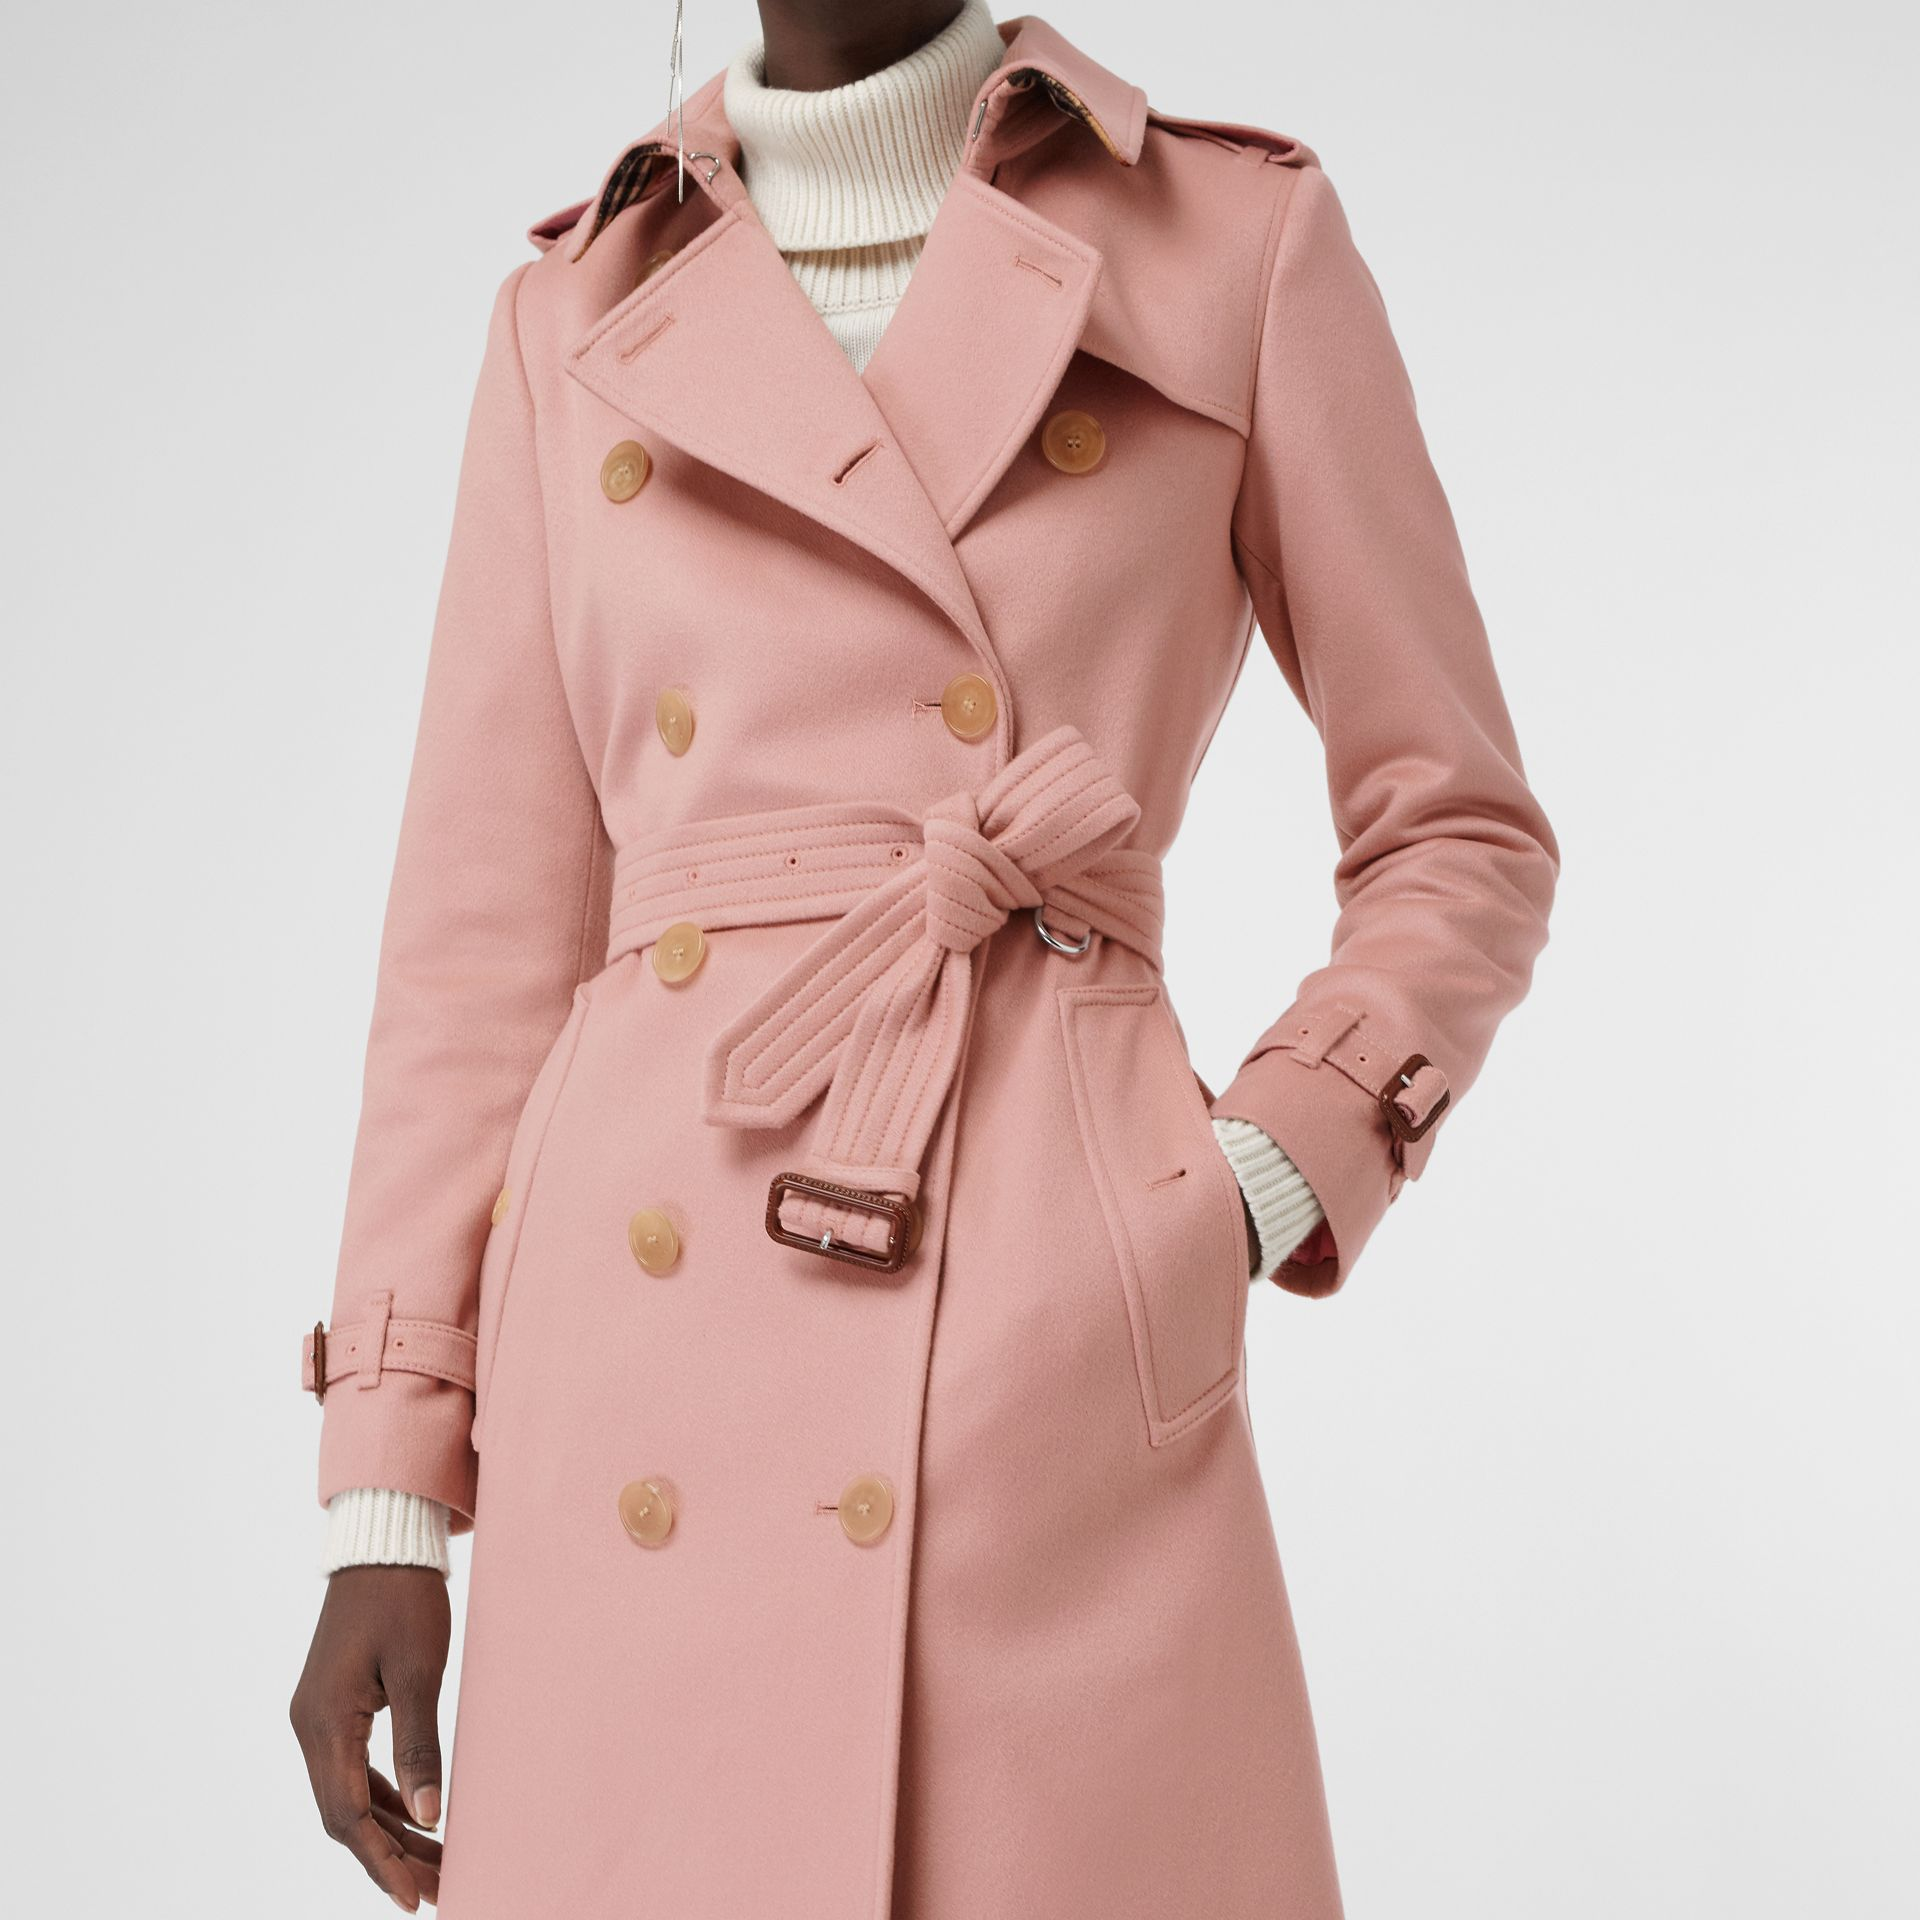 Cashmere Trench Coat in Chalk Pink - Women | Burberry - gallery image 5